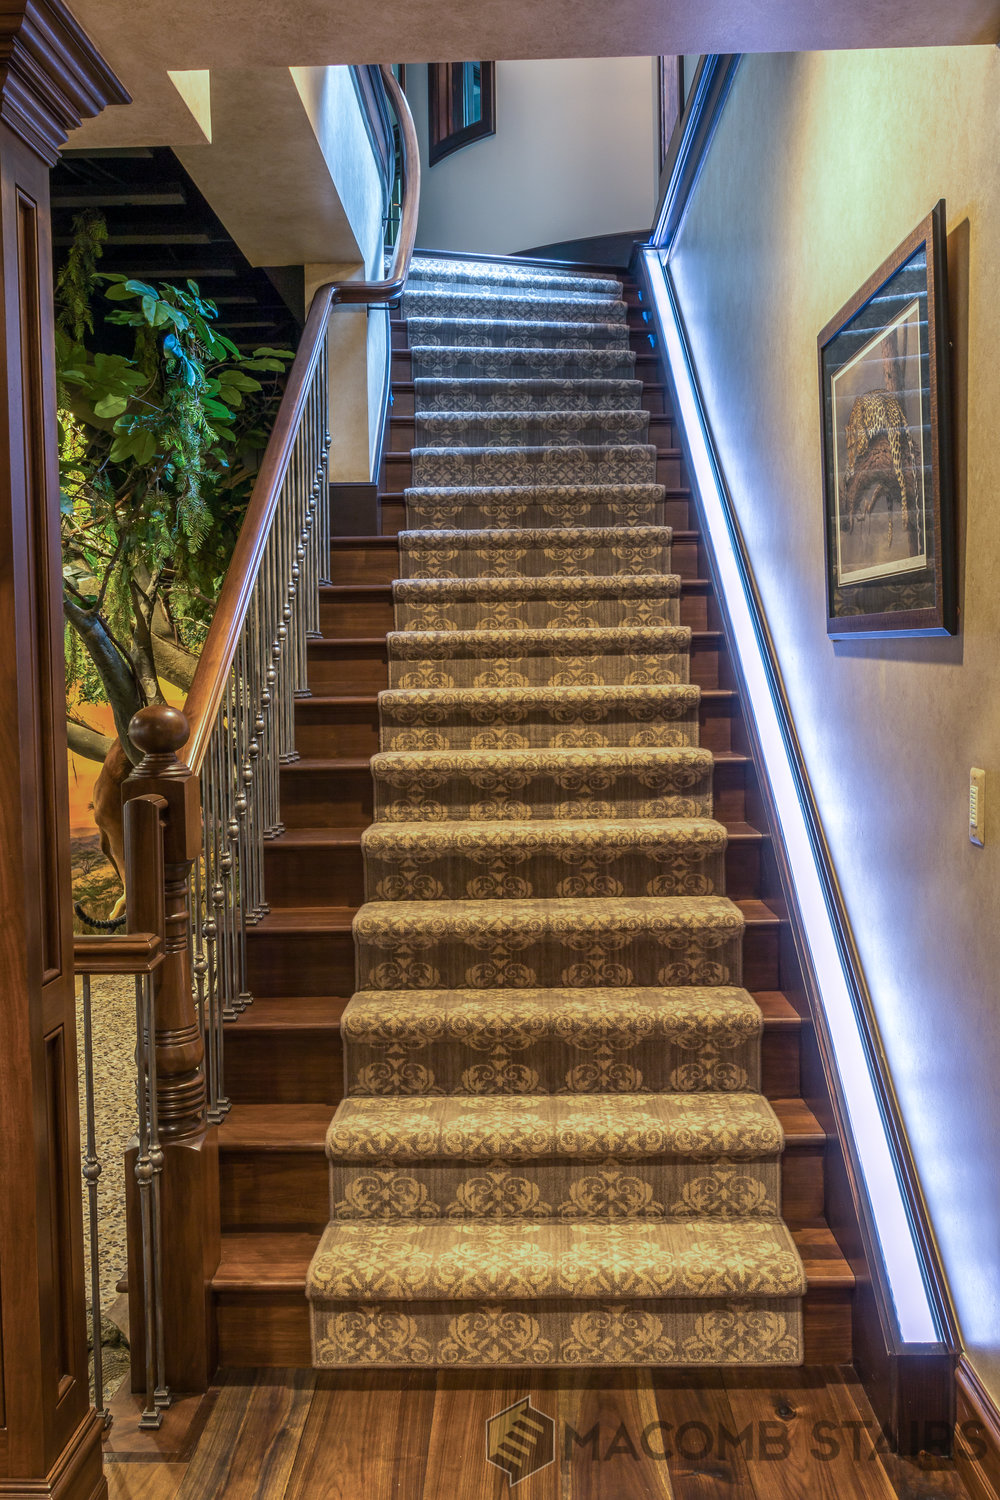 Macomb Stairs- Stair Photo-21.jpg